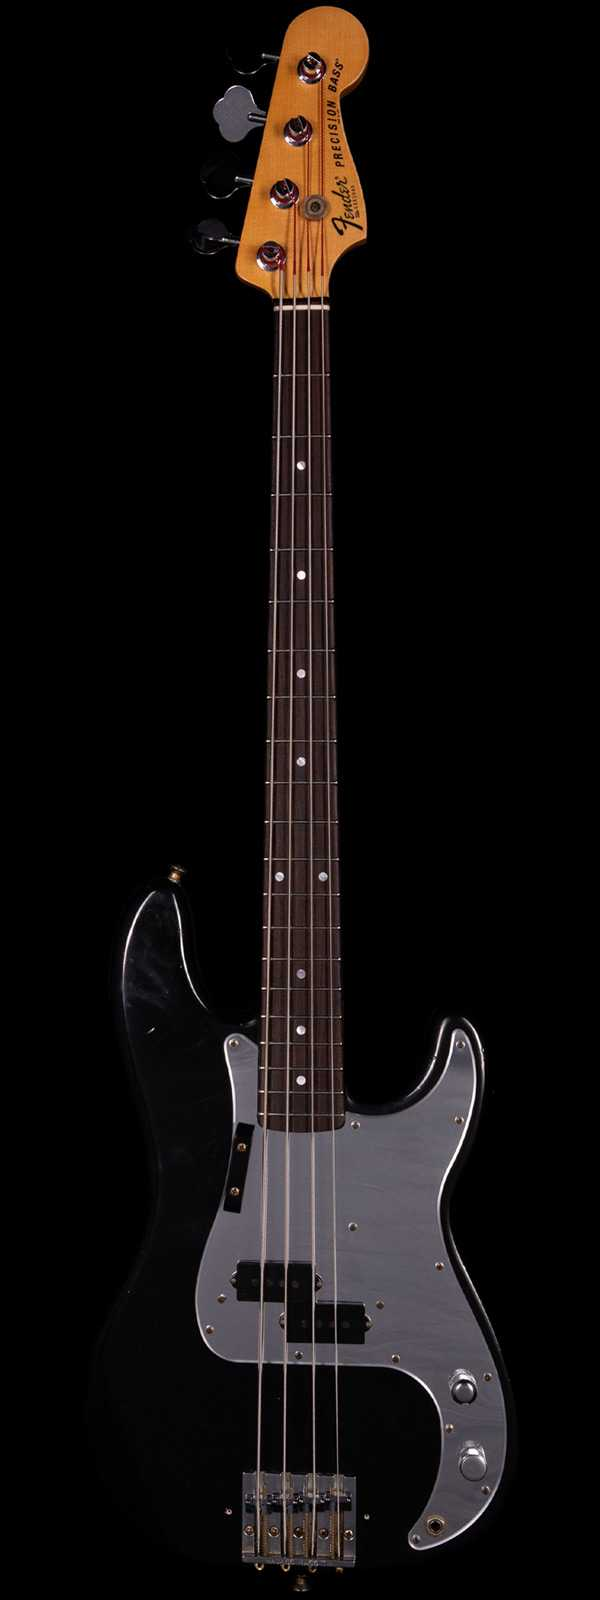 Fender Custom Shop Masterbuilt John Cruz Limited Edition Phil Lynott Precision Bass